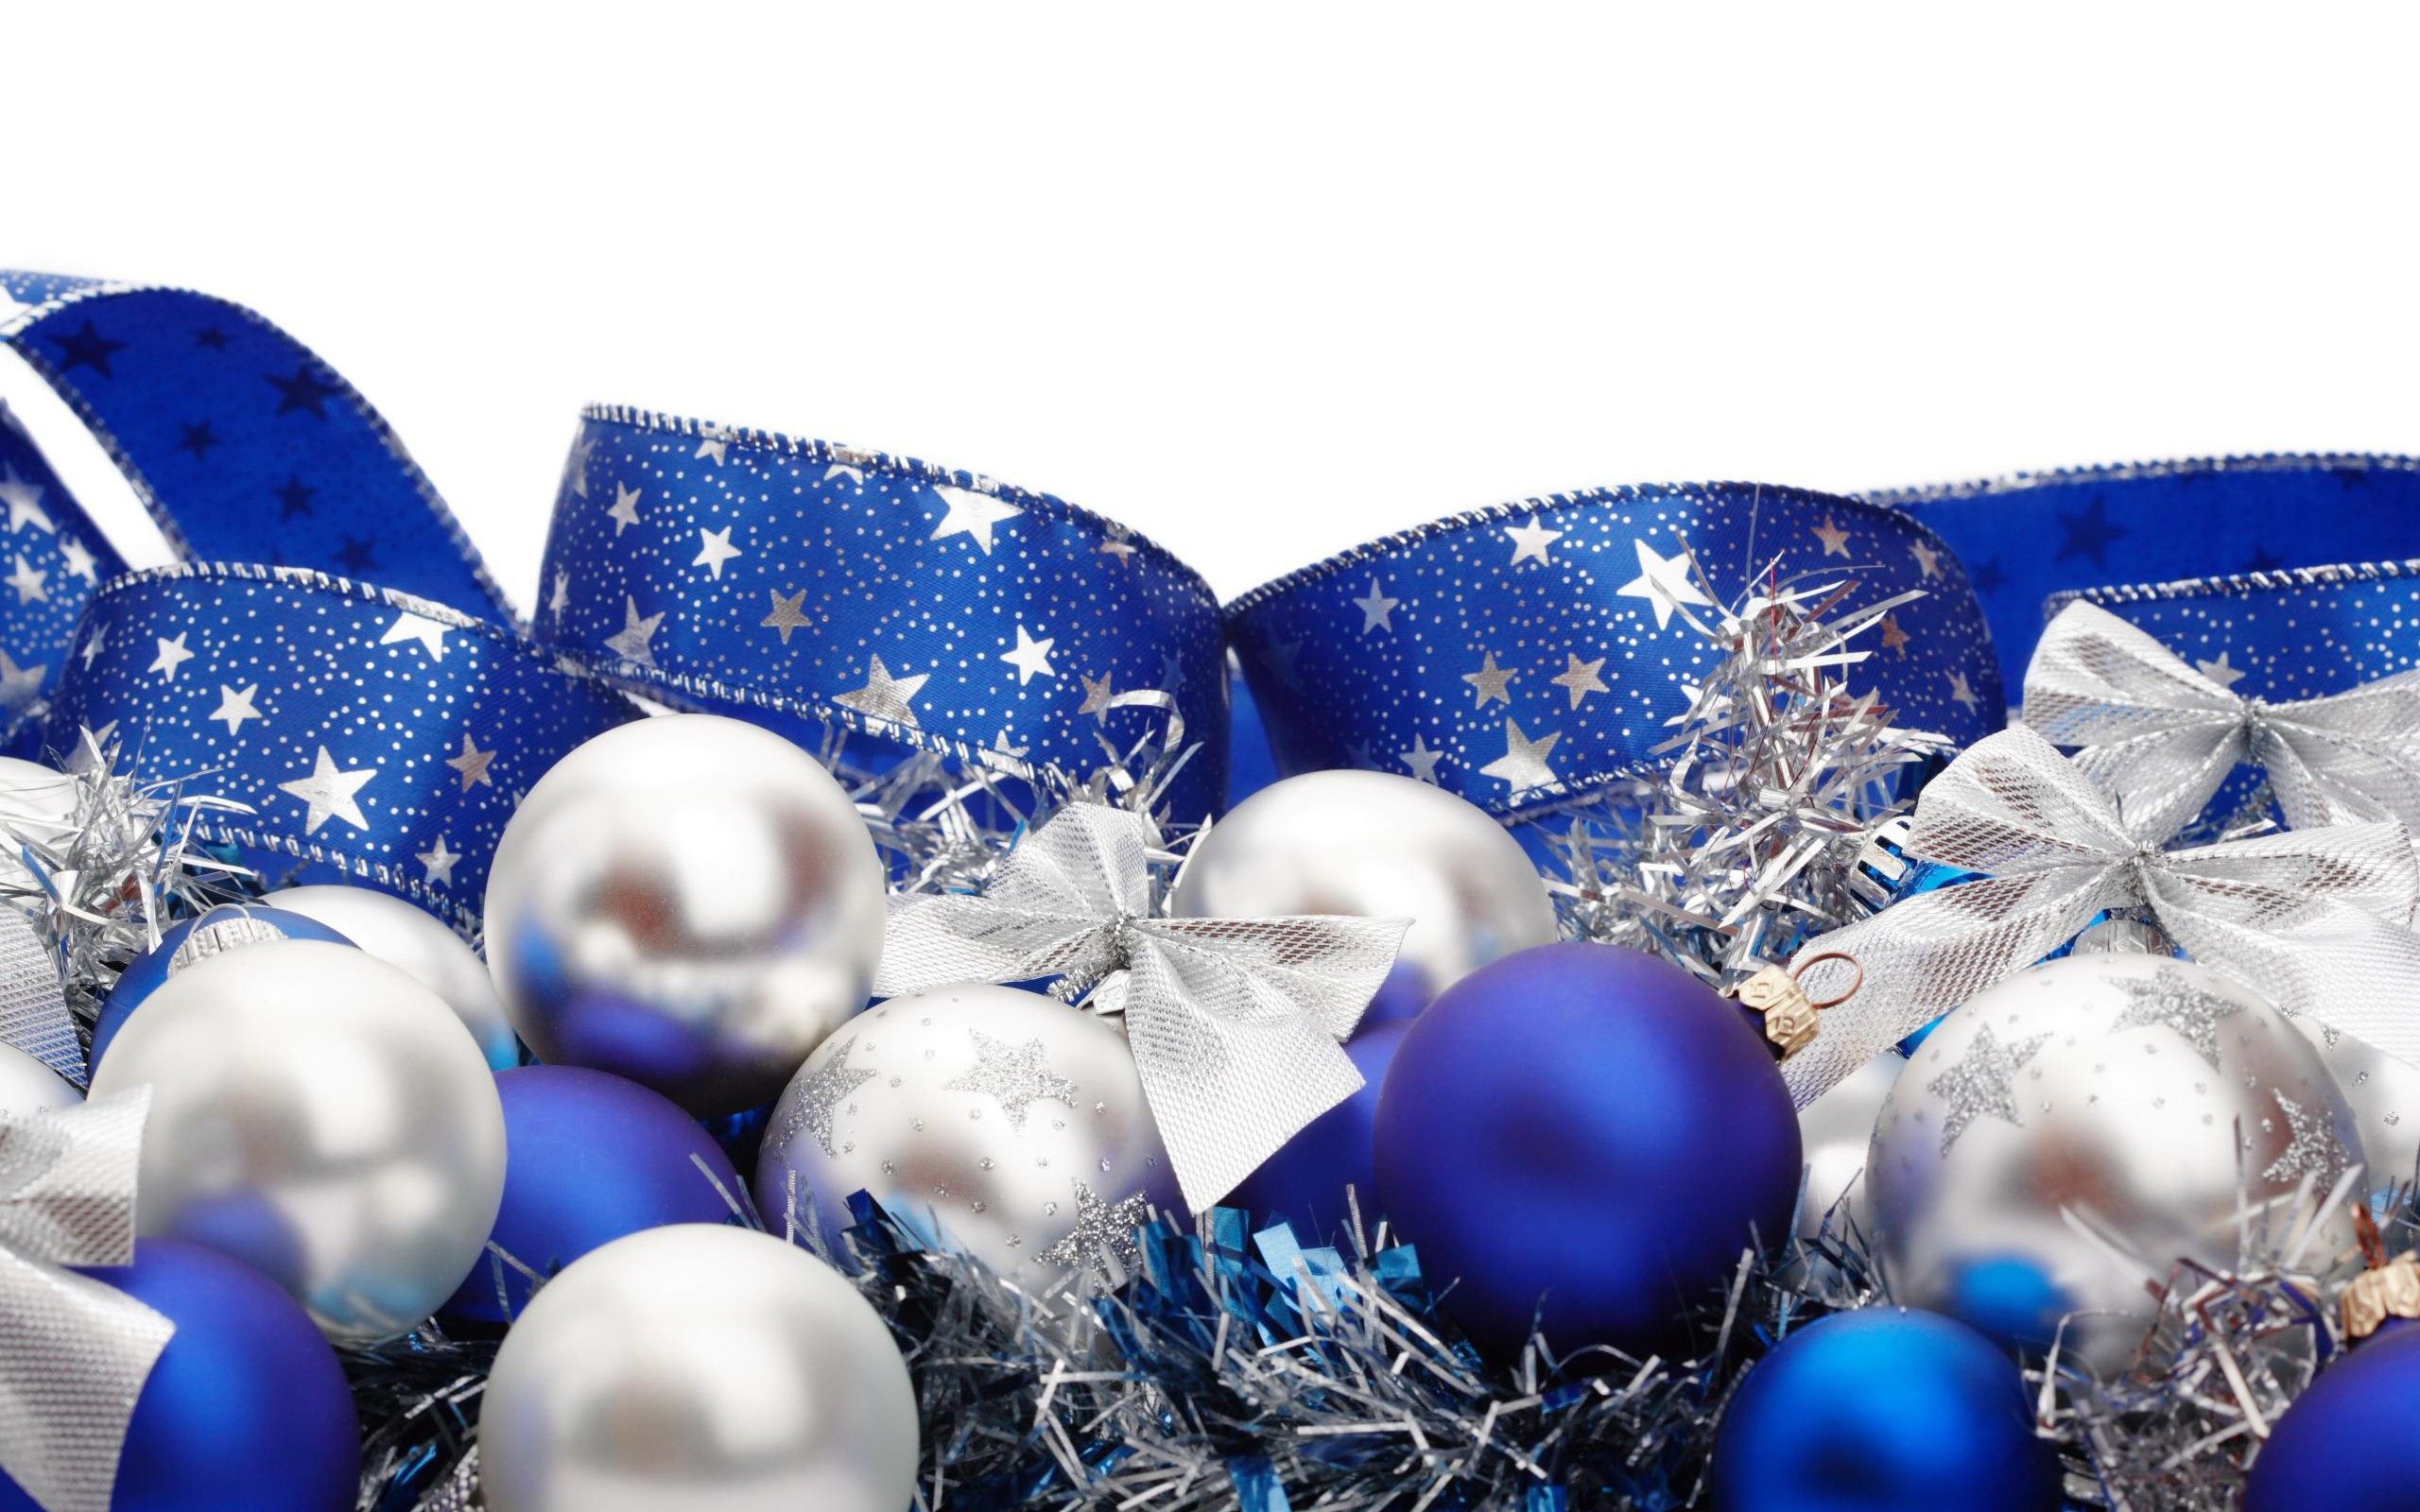 blue white ribbons christmas ornaments white background christmas decorations wallpaper 2560x1600 192998 wallpaperup - Blue And White Christmas Decorations